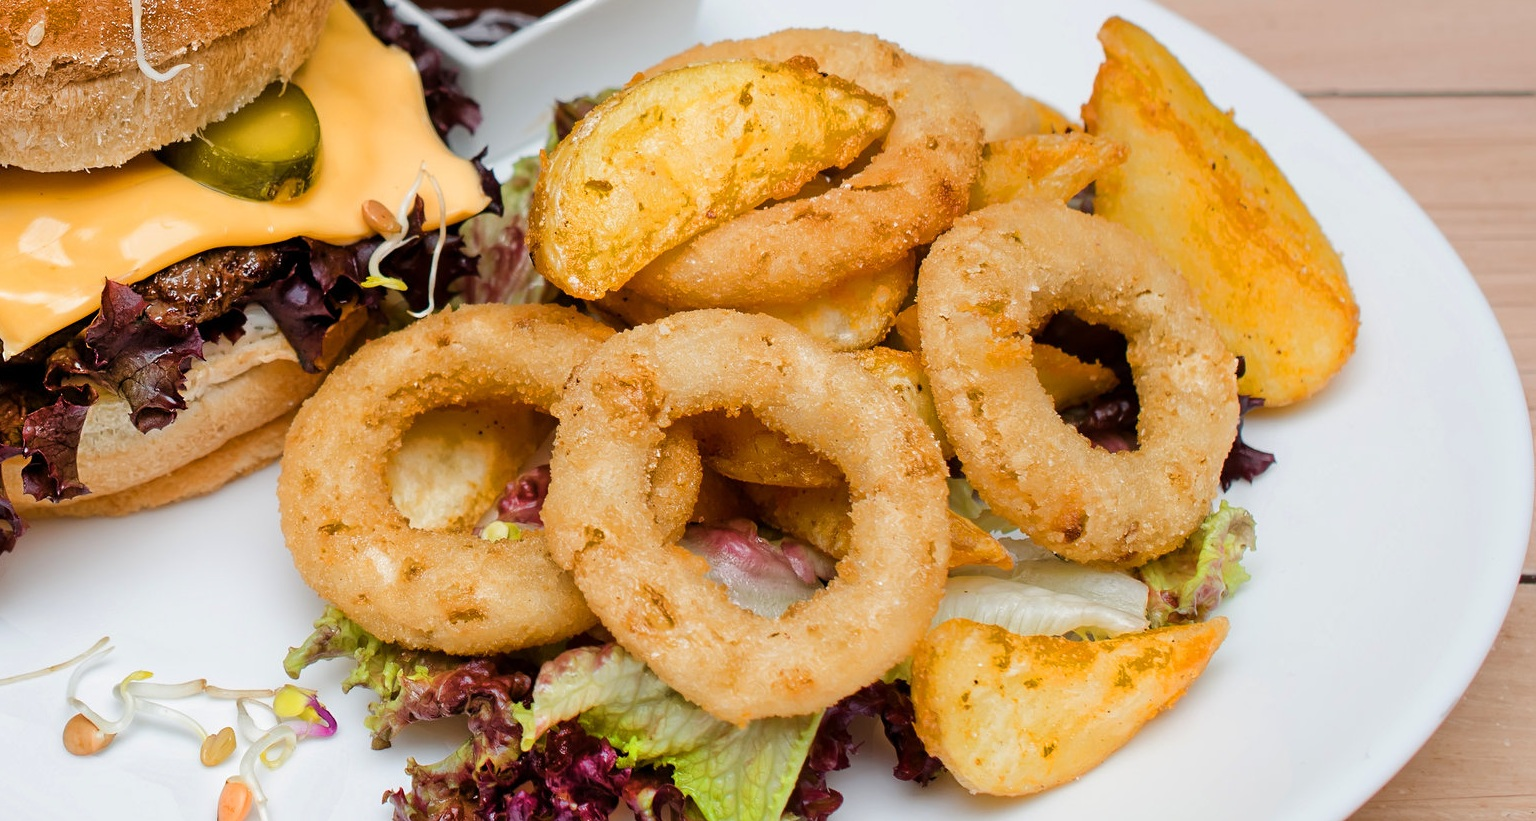 unrelated-photo-of-onion-rings.png